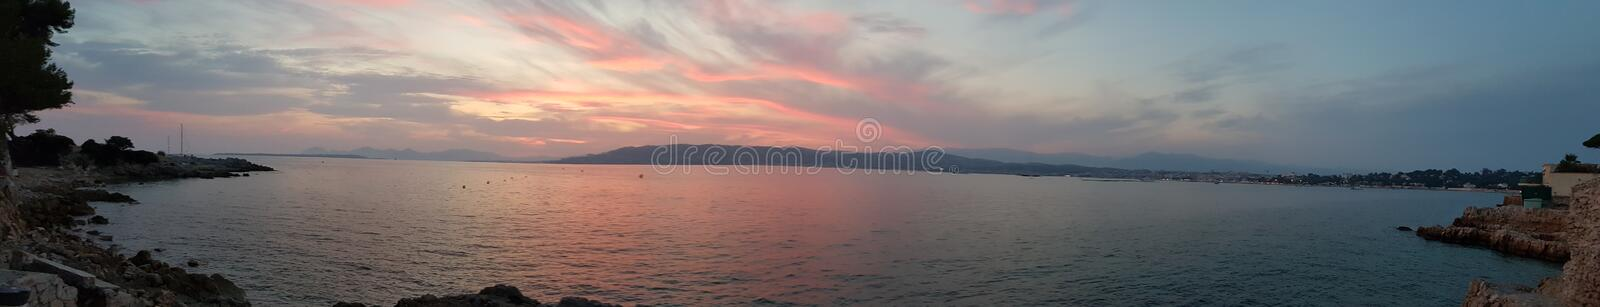 Vivid sunset with purple sky royalty free stock photography